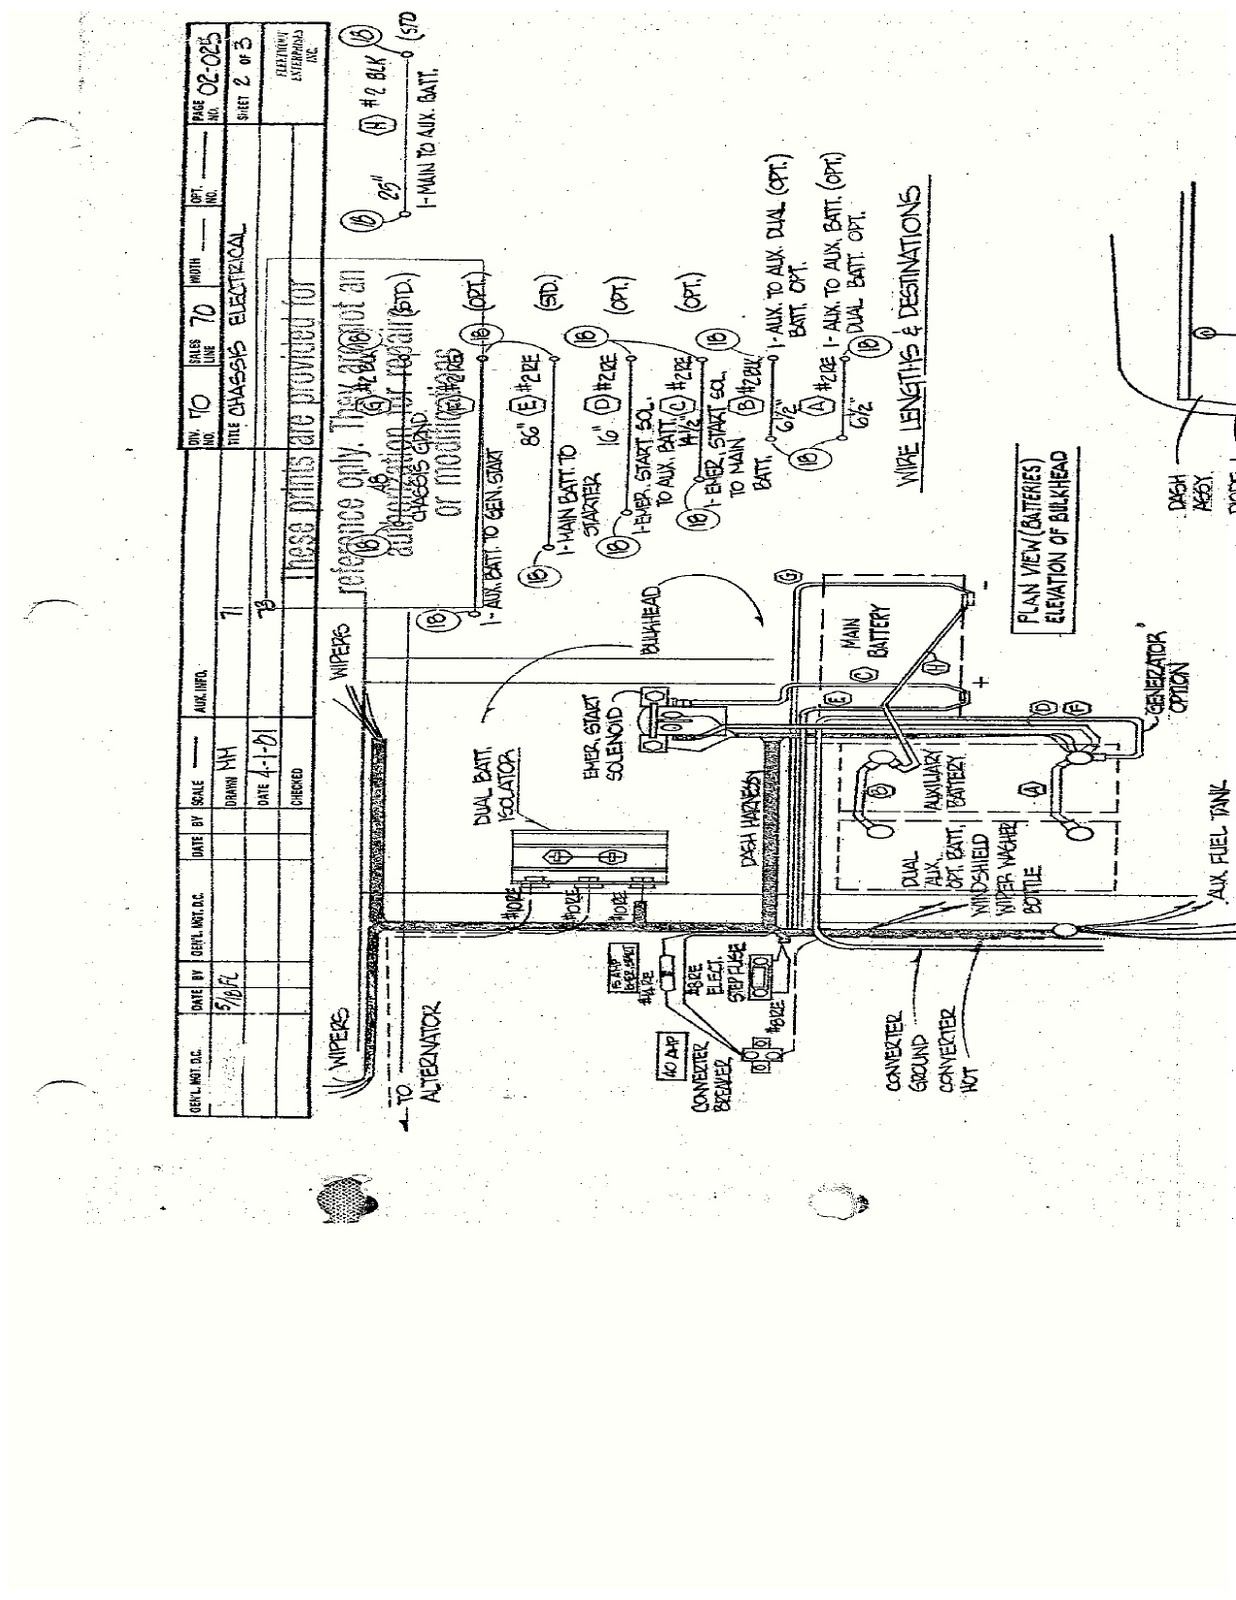 1982 p30 wiring diagram another blog about wiring diagram u2022 rh ok2 infoservice ru [ 1236 x 1600 Pixel ]